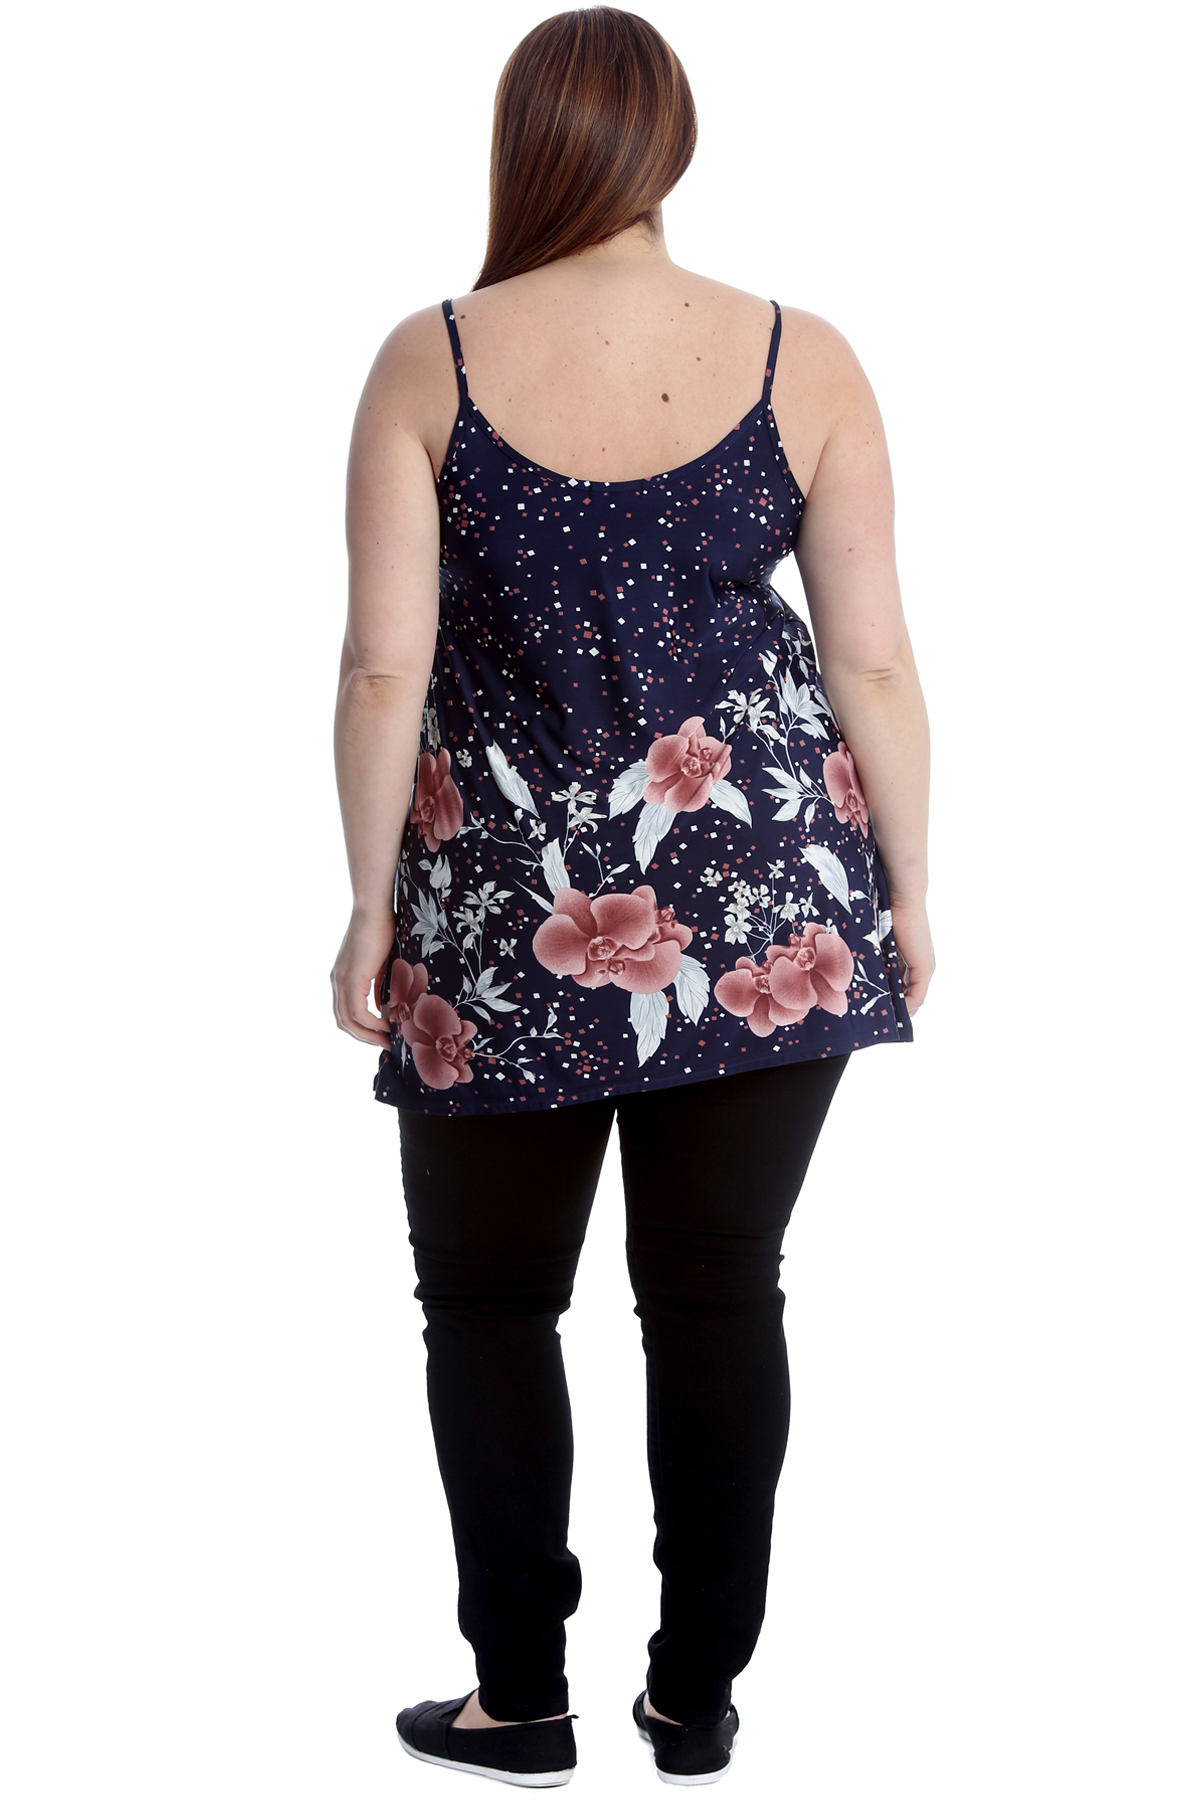 897feaac6367 Womens Cami Top Ladies Plus Size Thin Strappy Swing Vest Printed Floral  Flared Women's Clothing Camisoles ...